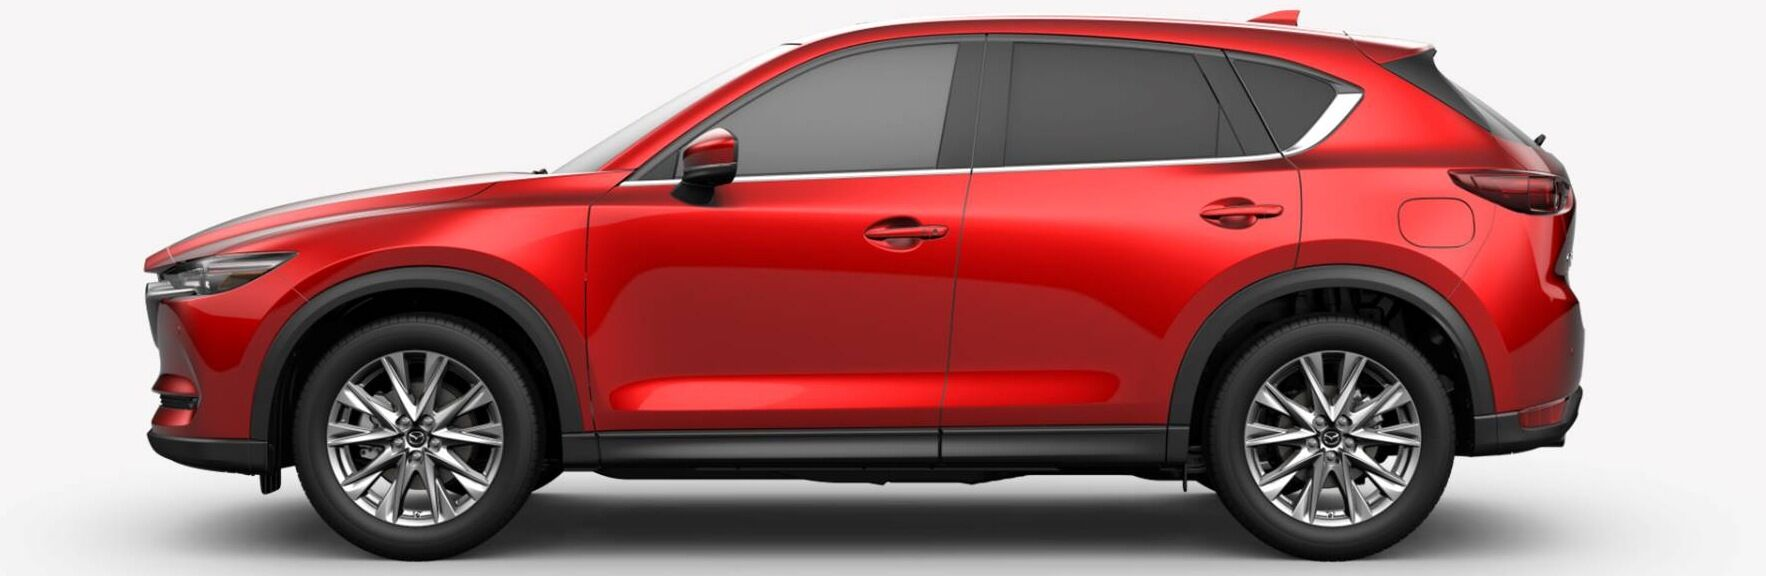 2019 Mazda CX-5 red side view